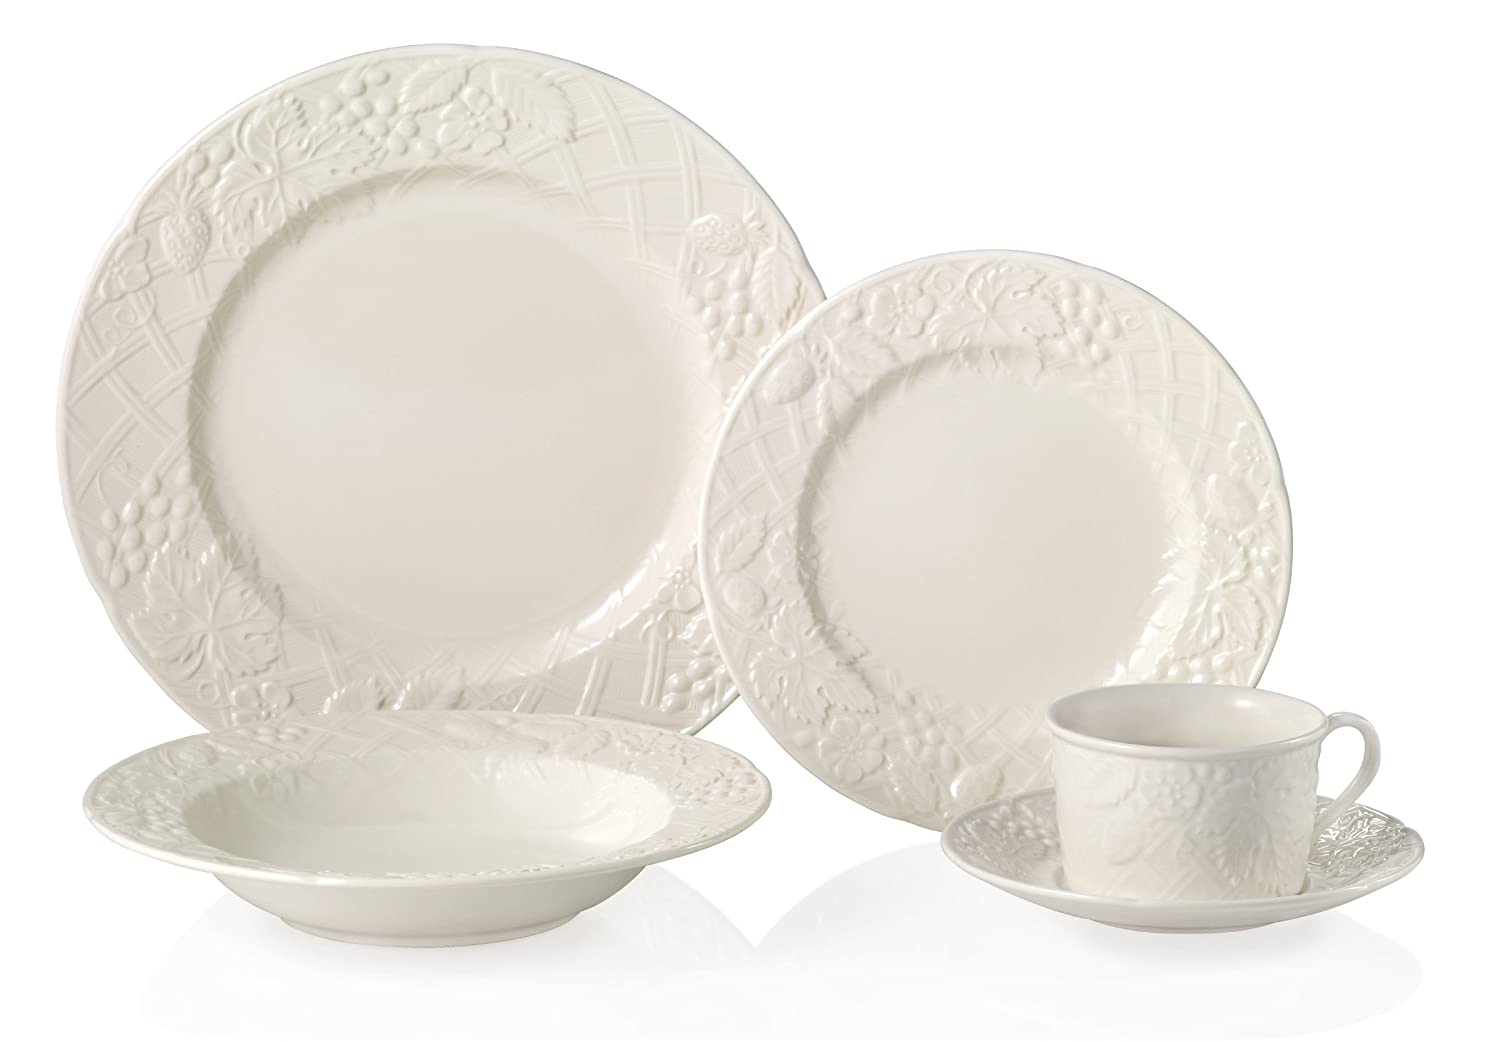 amazoncom mikasa english countryside 40piece dinnerware set service for 8 kitchen u0026 dining